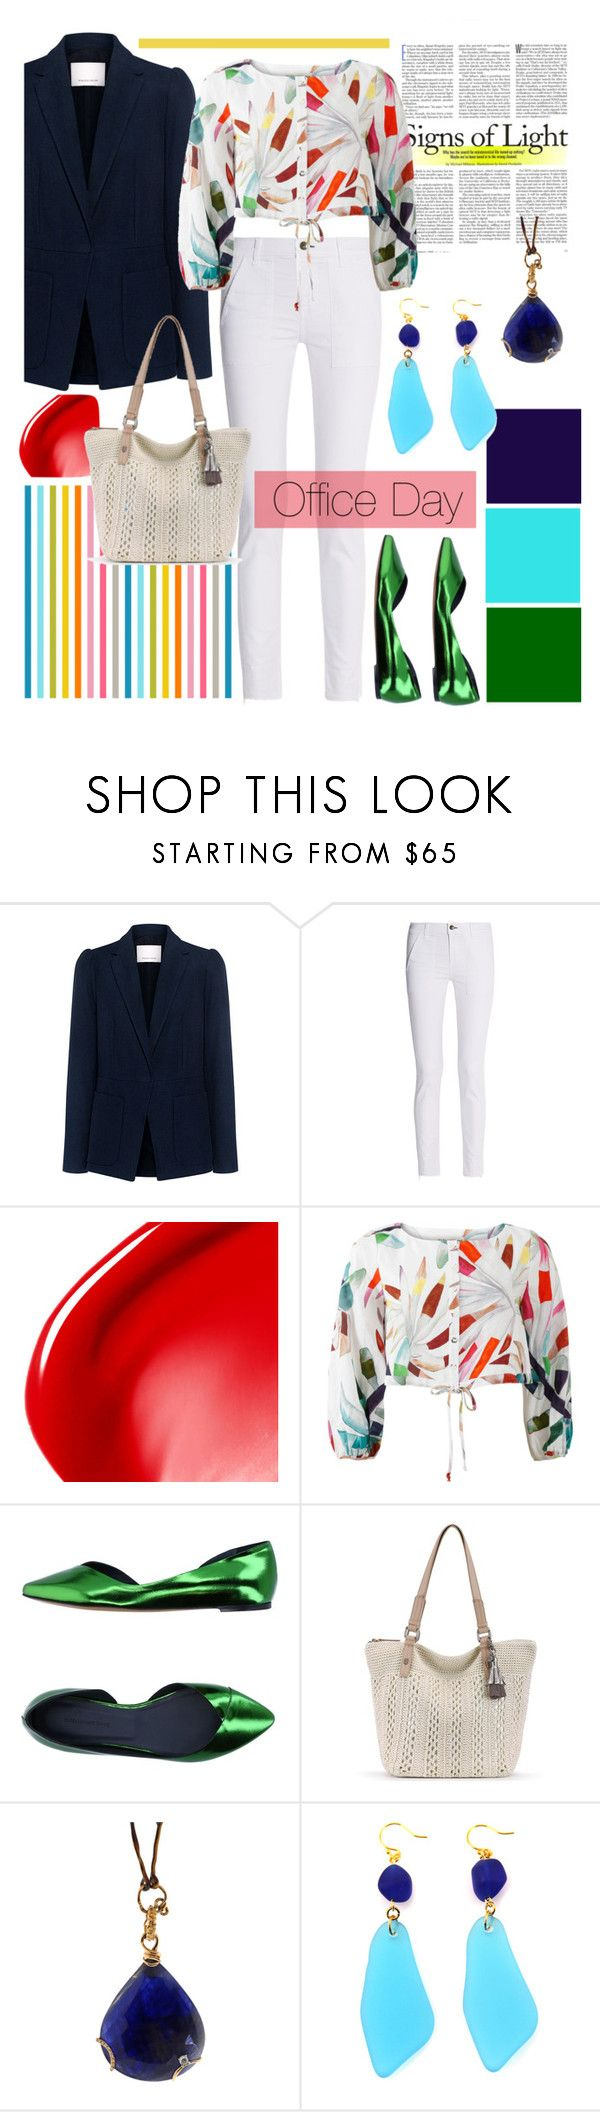 """Office Day,"" by babett-beattie ❤ liked on Polyvore featuring Rebecca Taylor, rag & bone, NARS Cosmetics, Mara Hoffman, Étoile Isabel Marant and Federica Rettore"